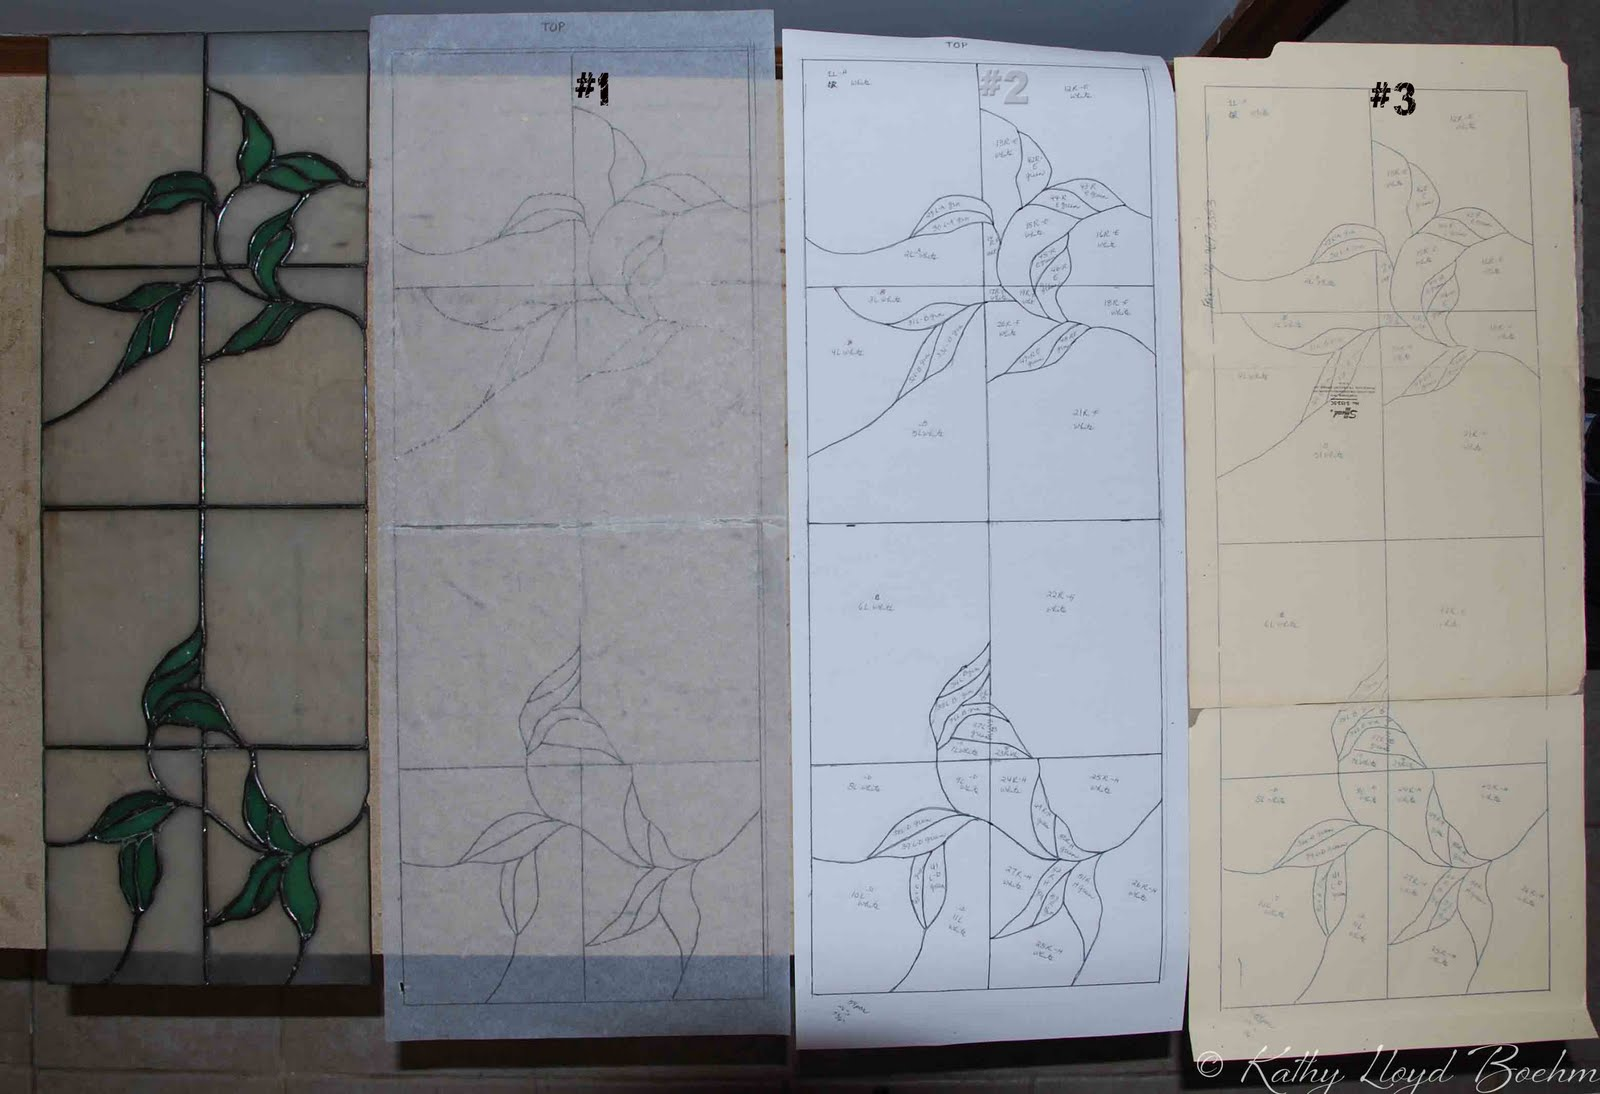 Kitchen Cabinets Stained Glass Patterns -  see 2 from the paper copy i used carbon paper to trace it onto manila folders see 3 which then becomes the pattern used to cut the glass